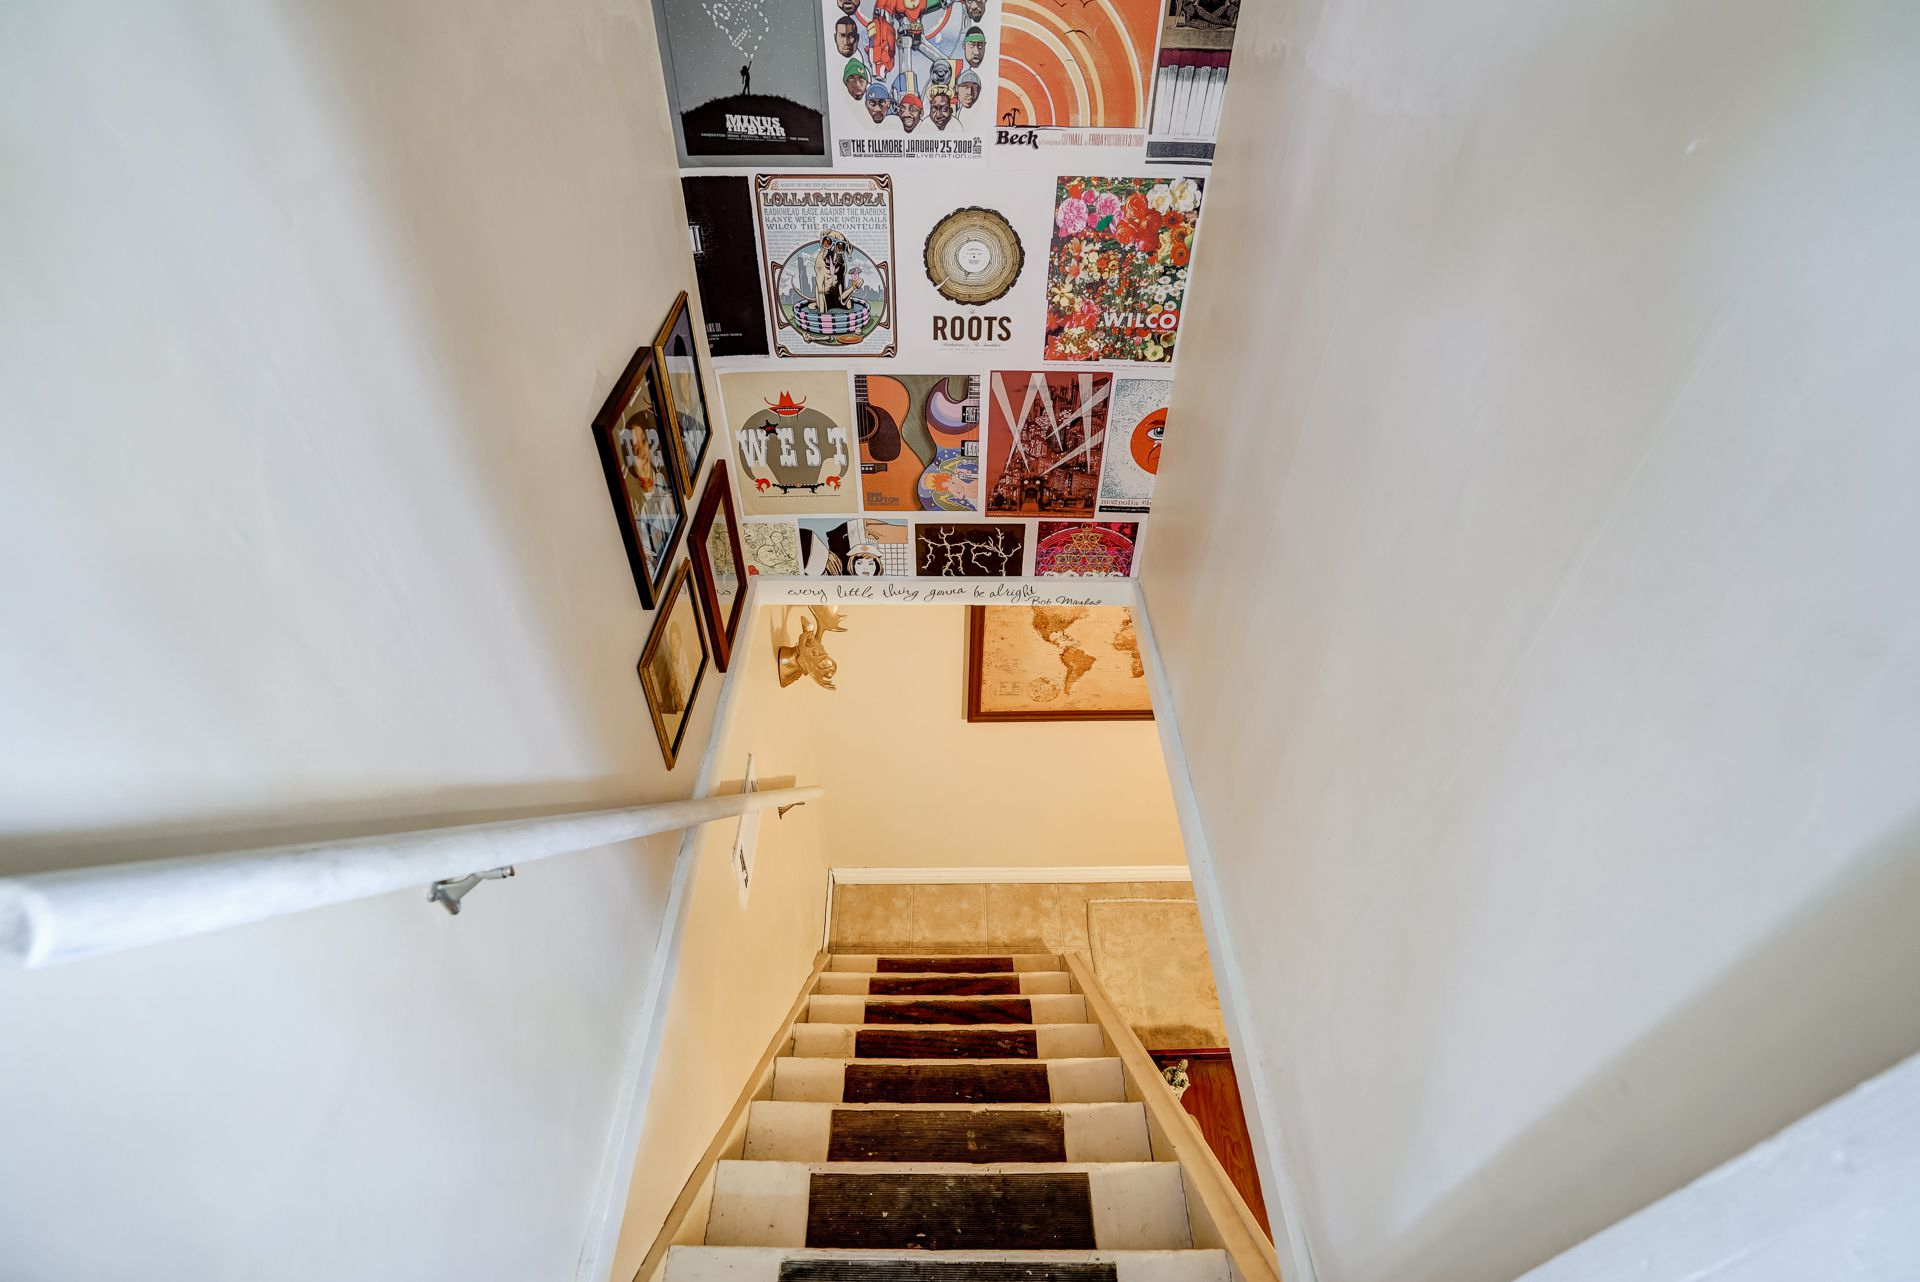 Stairs to basement from kitchen.